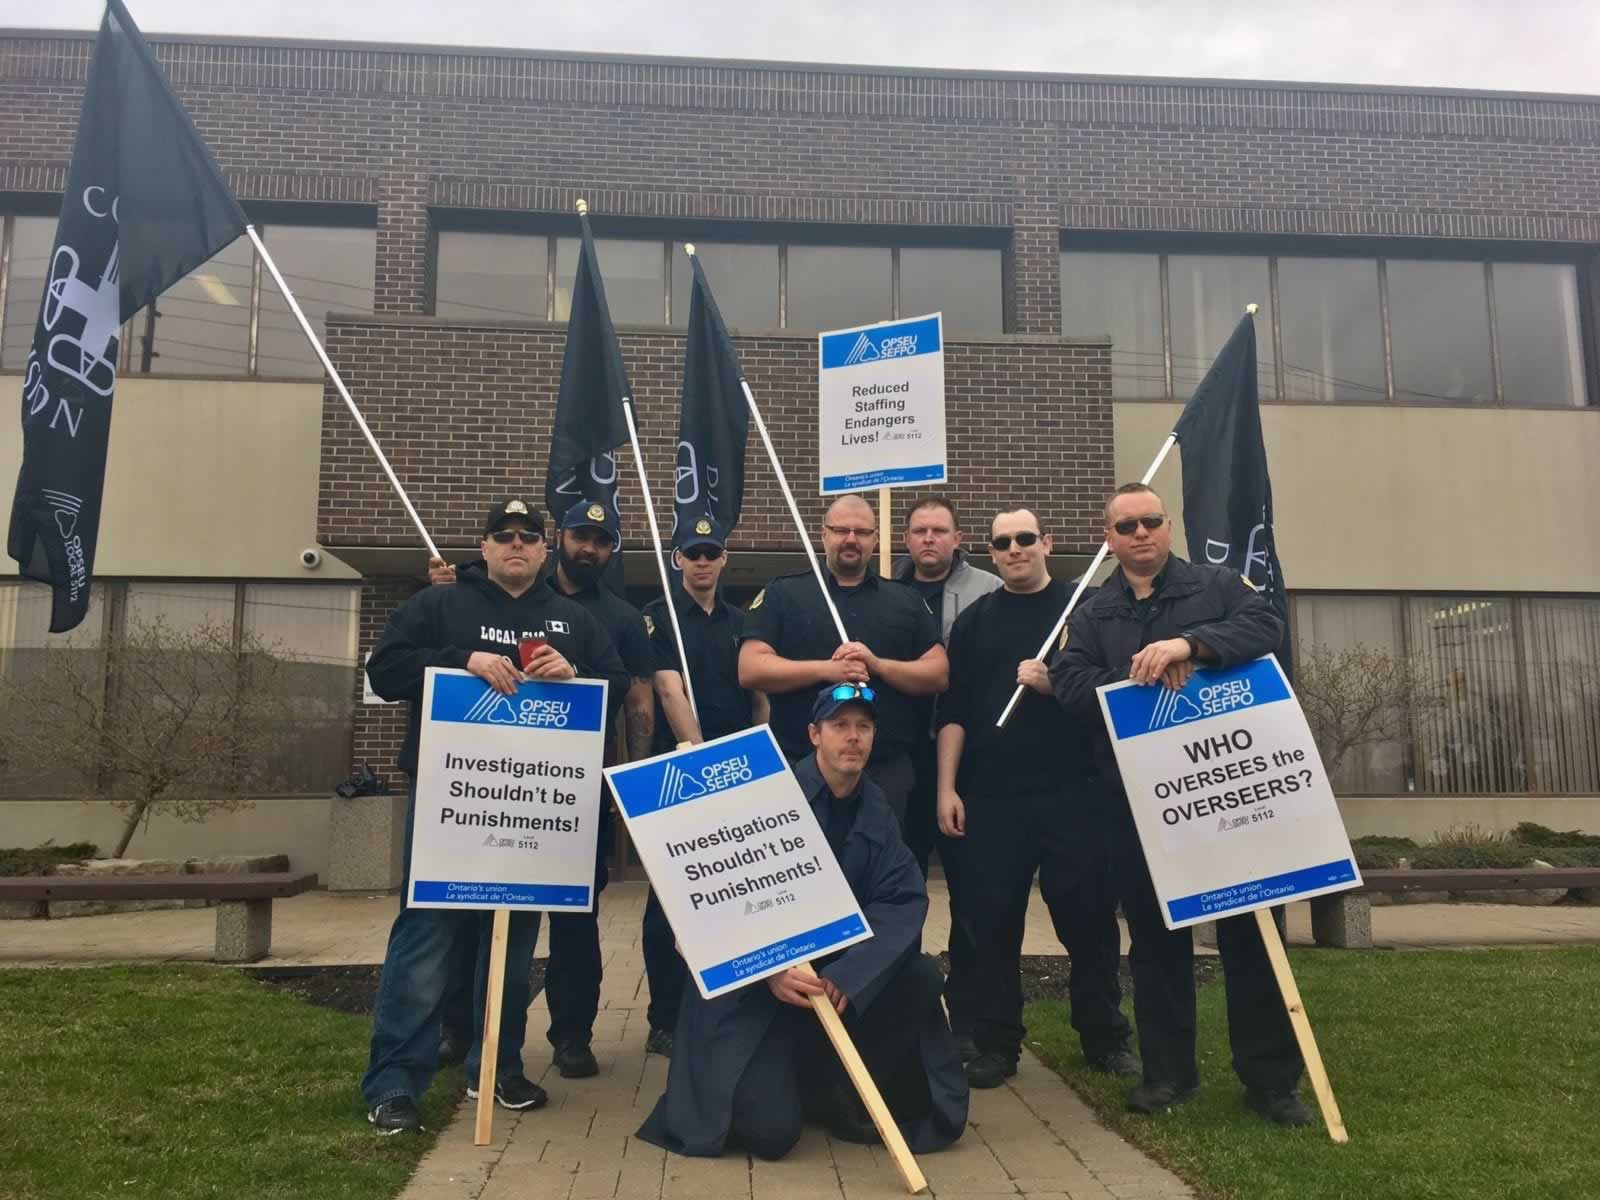 opseu_local_5112_executive_-_charles_coutu_arsalan_munir_eric_martyn_mark_manna_james_flanagan_jon_hastie_jacob_balcerzyk_gord_cobb.jpg